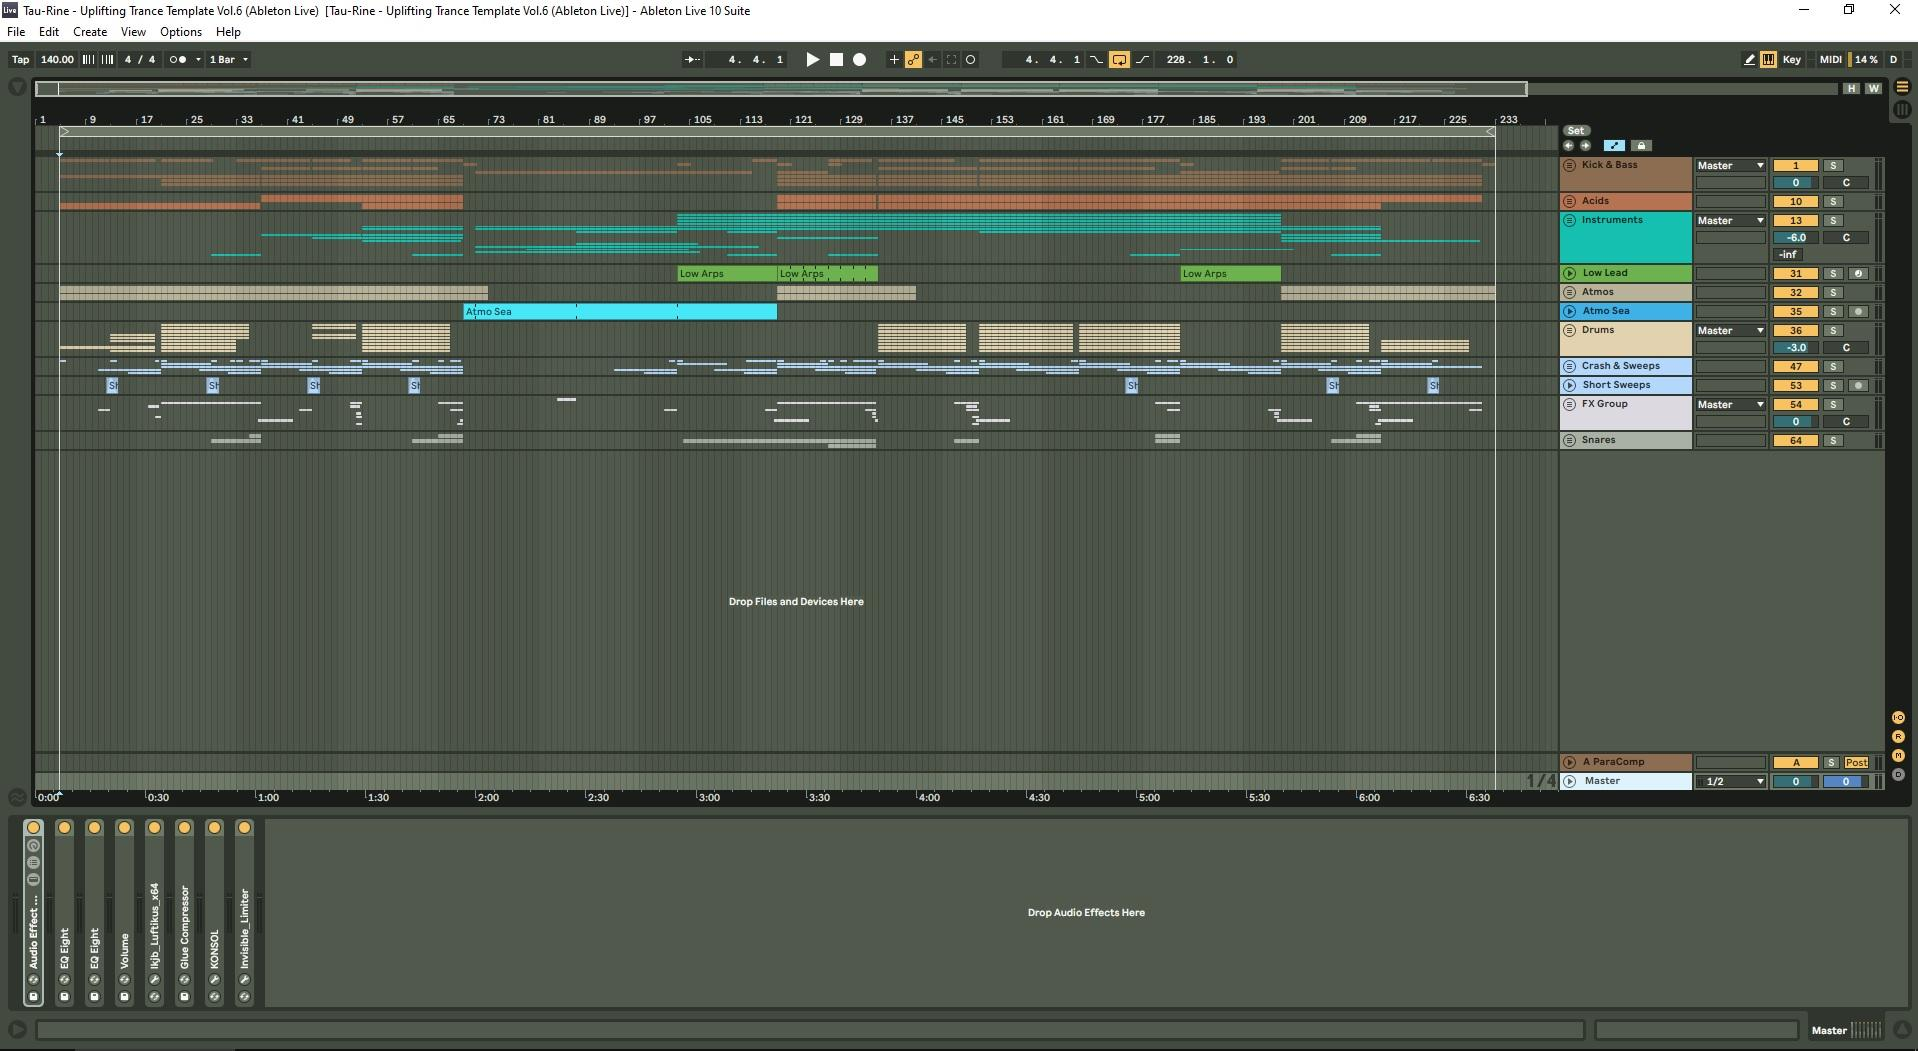 tau-rine-uplifting-trance-template-vol-6-for-ableton-live-screen